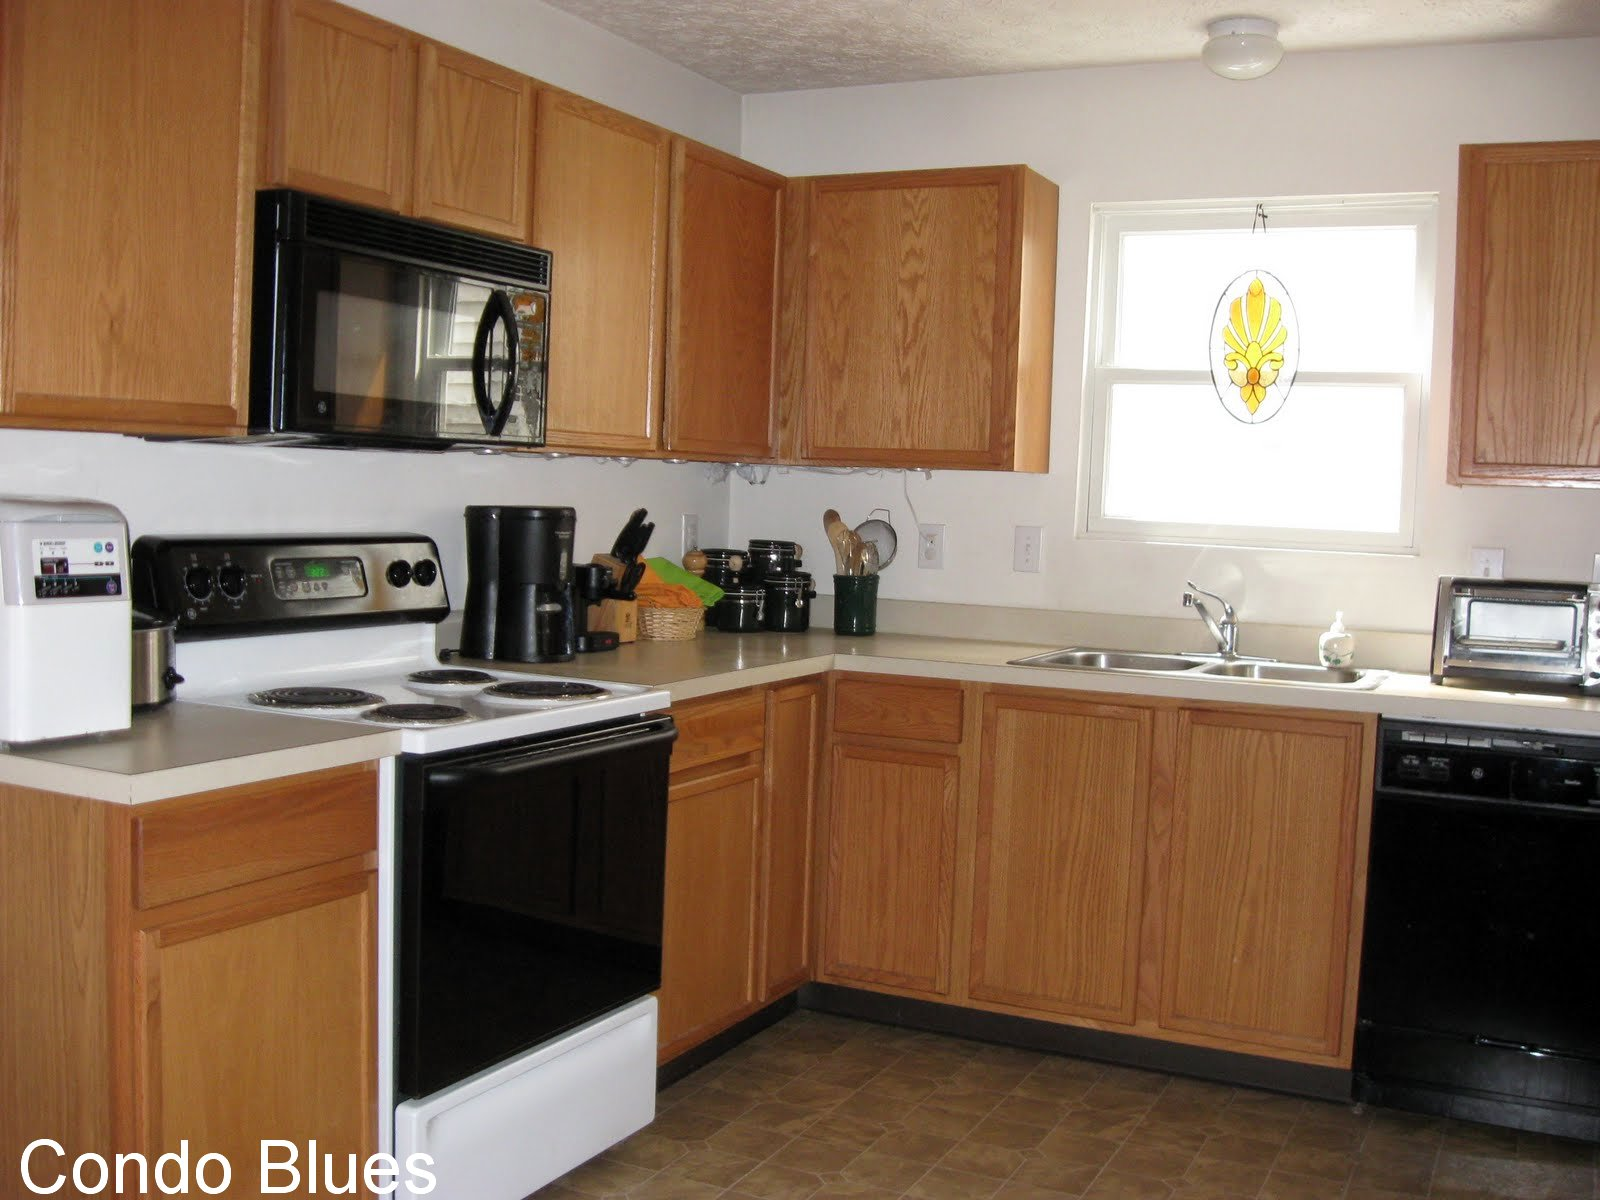 Condo blues i dream of new kitchens for Basic kitchen remodel ideas